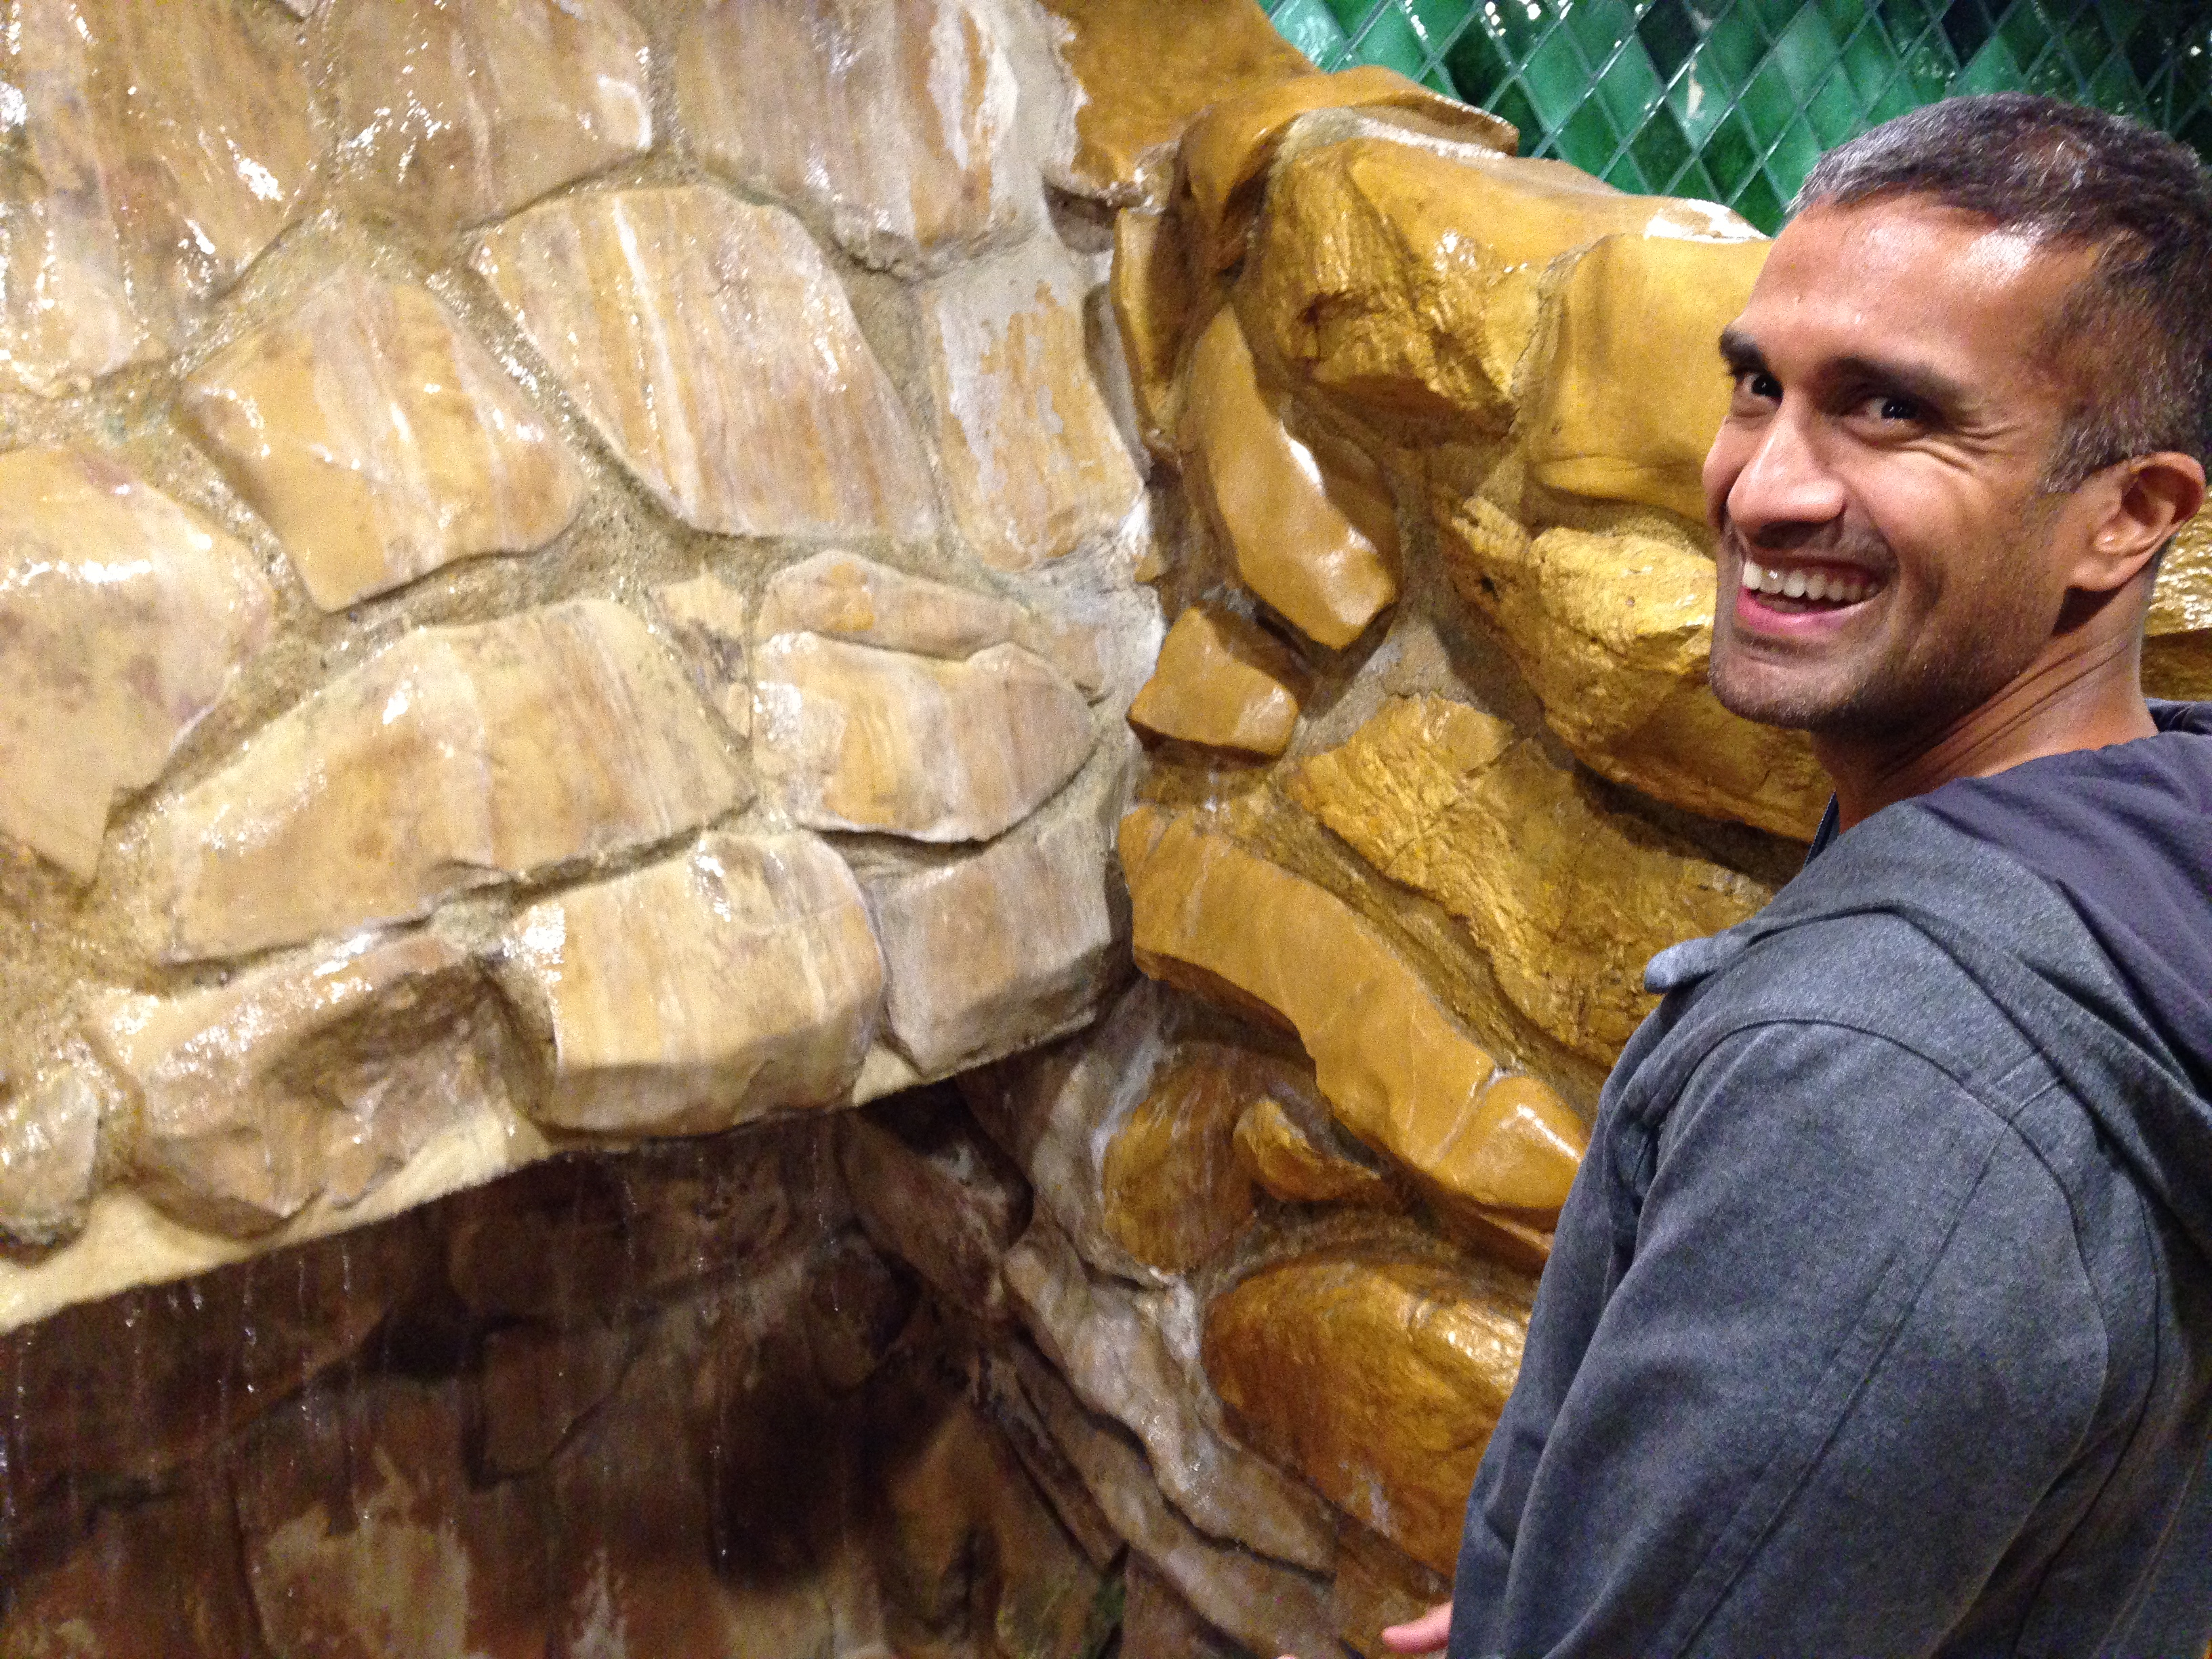 My fave - the infamous rock wall in the men's bathroom (yes, in the men's bathroom - that's me! I've no shame/a wild determination to get photos for the blog).